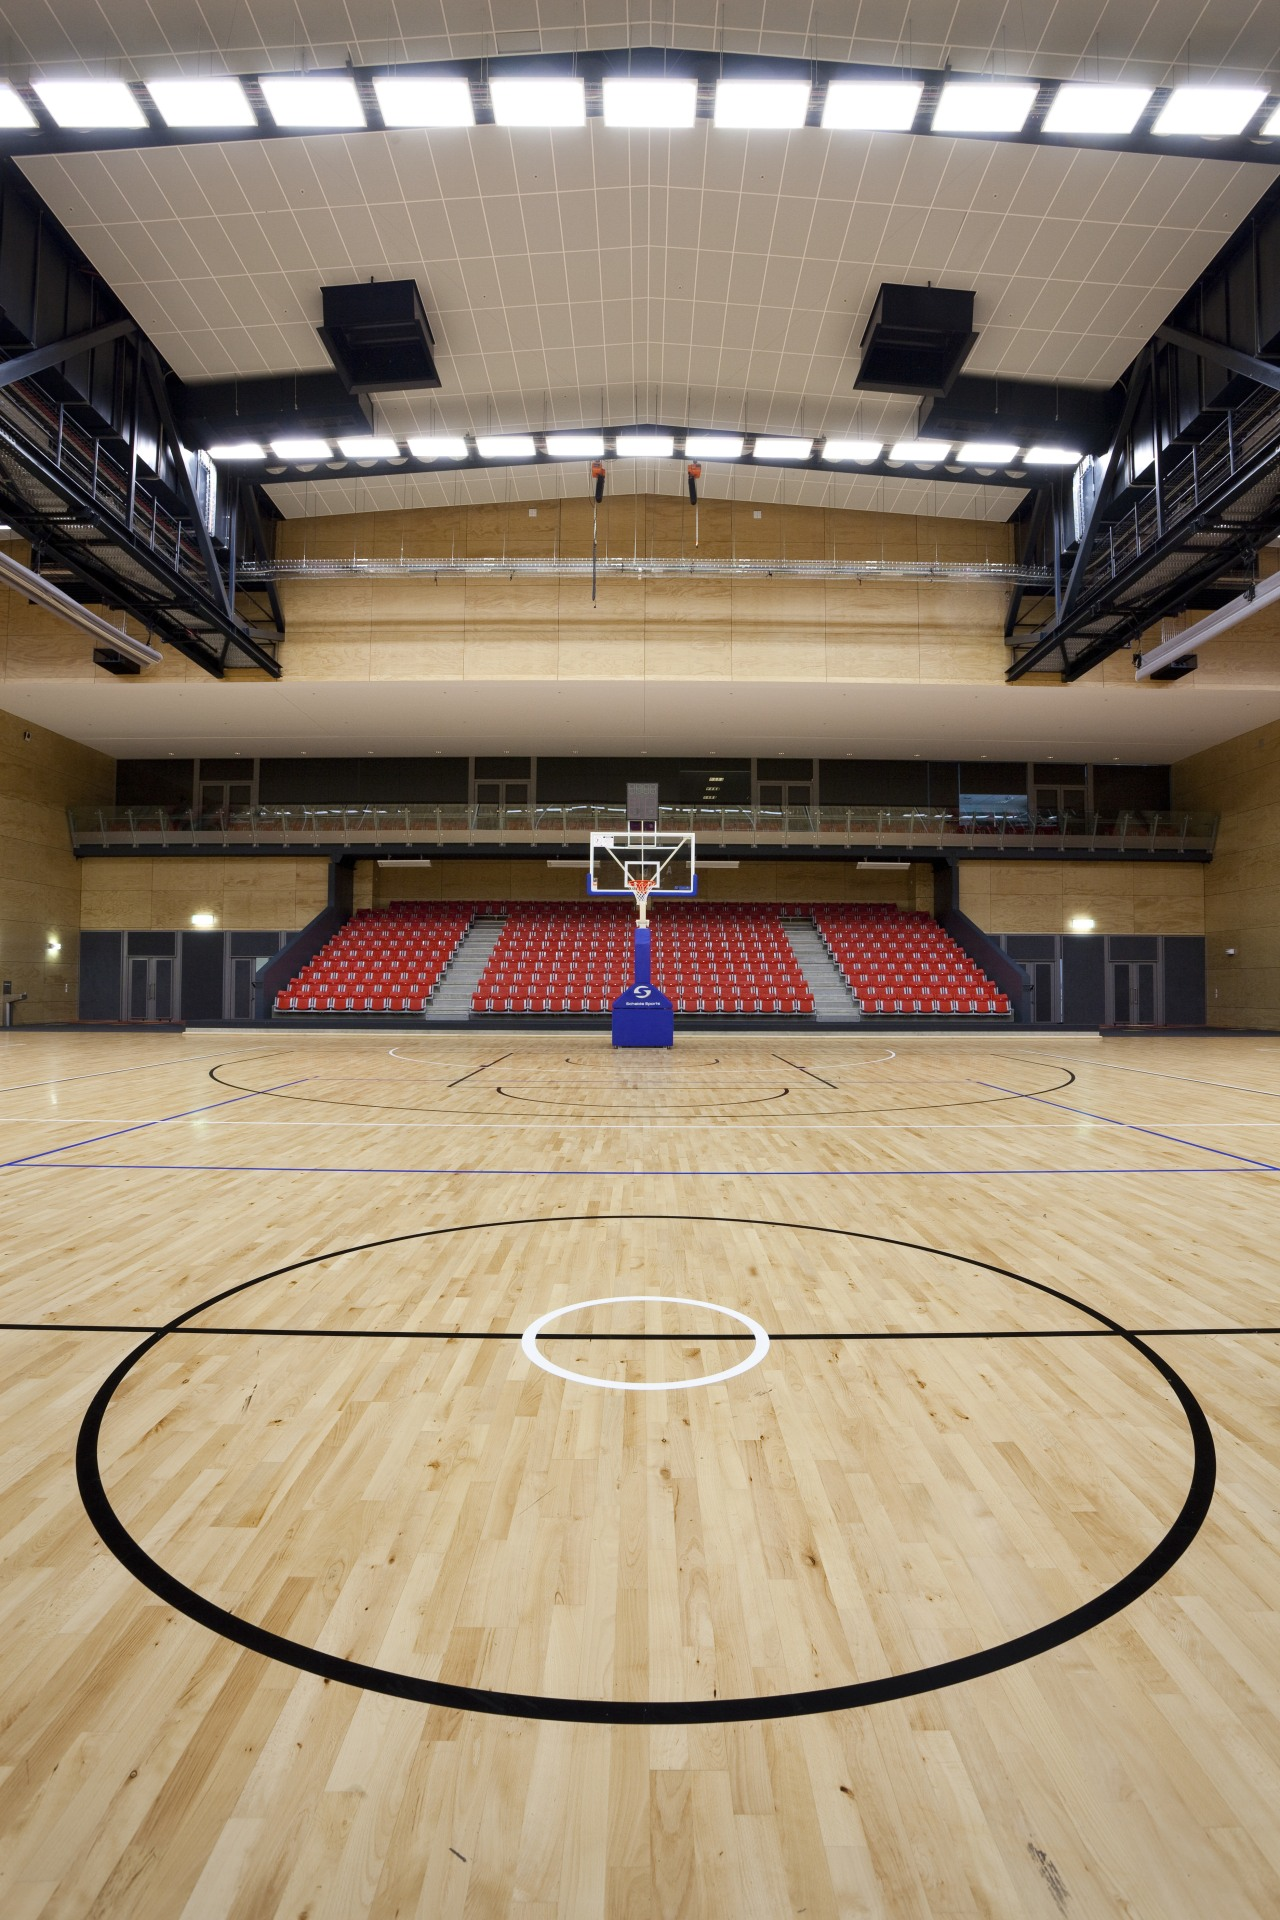 Indoor court with black lines. arena, basketball court, floor, flooring, hardwood, leisure centre, sport venue, sports, stadium, structure, wood, orange, gray